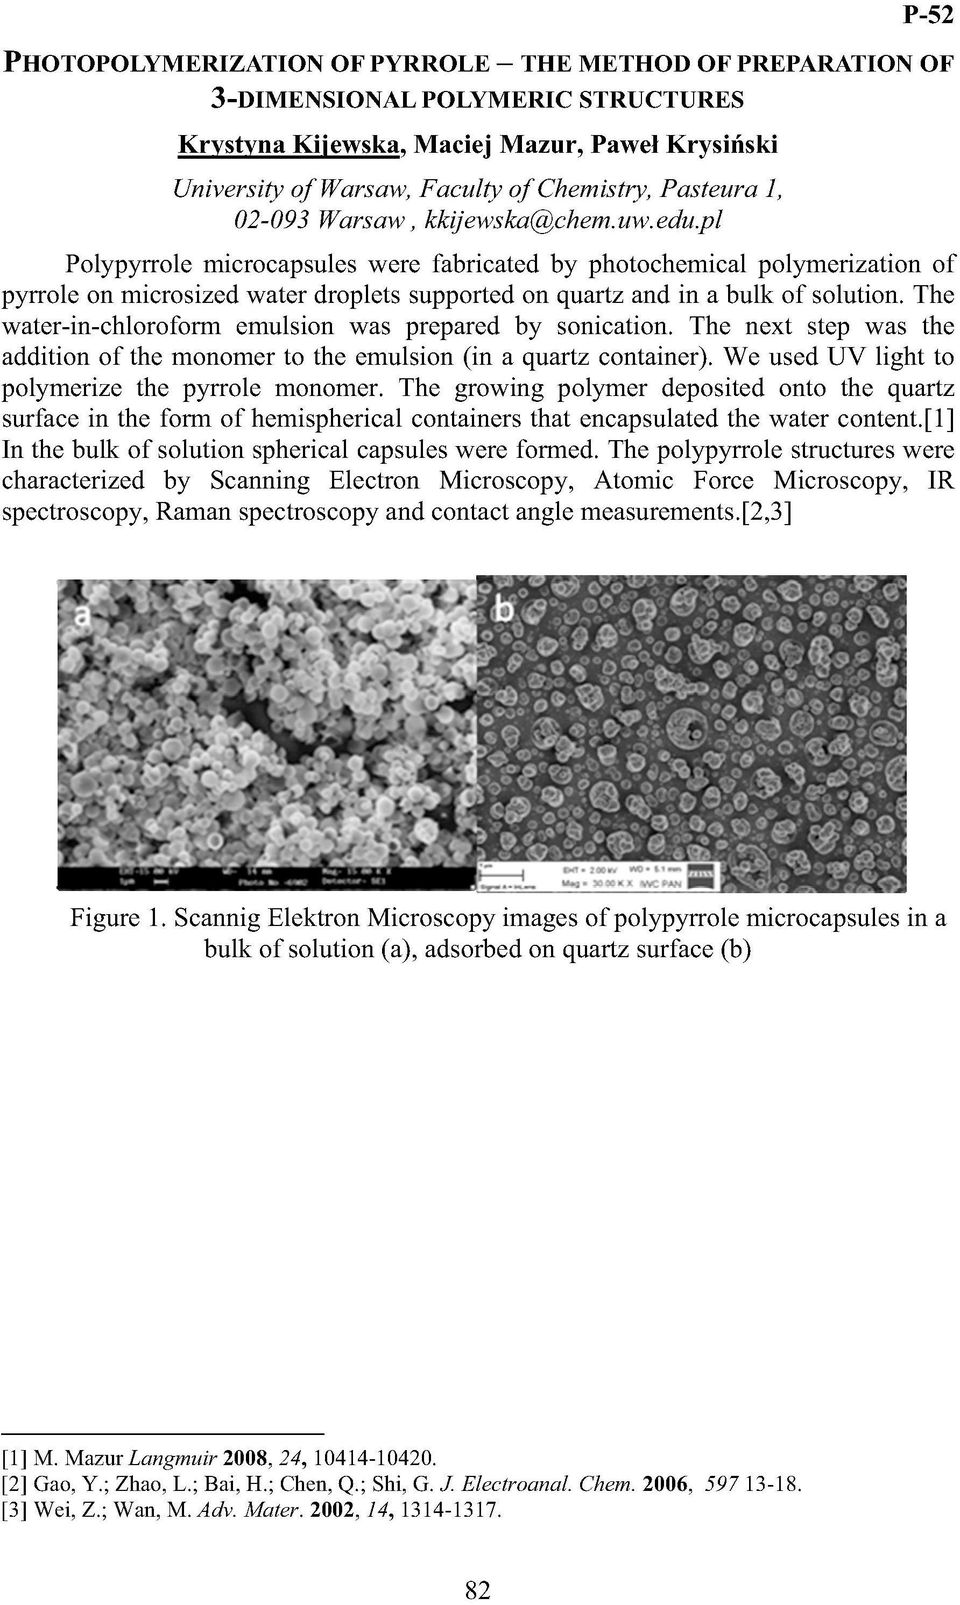 pl Polypyrrole microcapsules were fabricated by photochemical polymerization of pyrrole on microsized water droplets supported on quartz and in a bulk of solution.